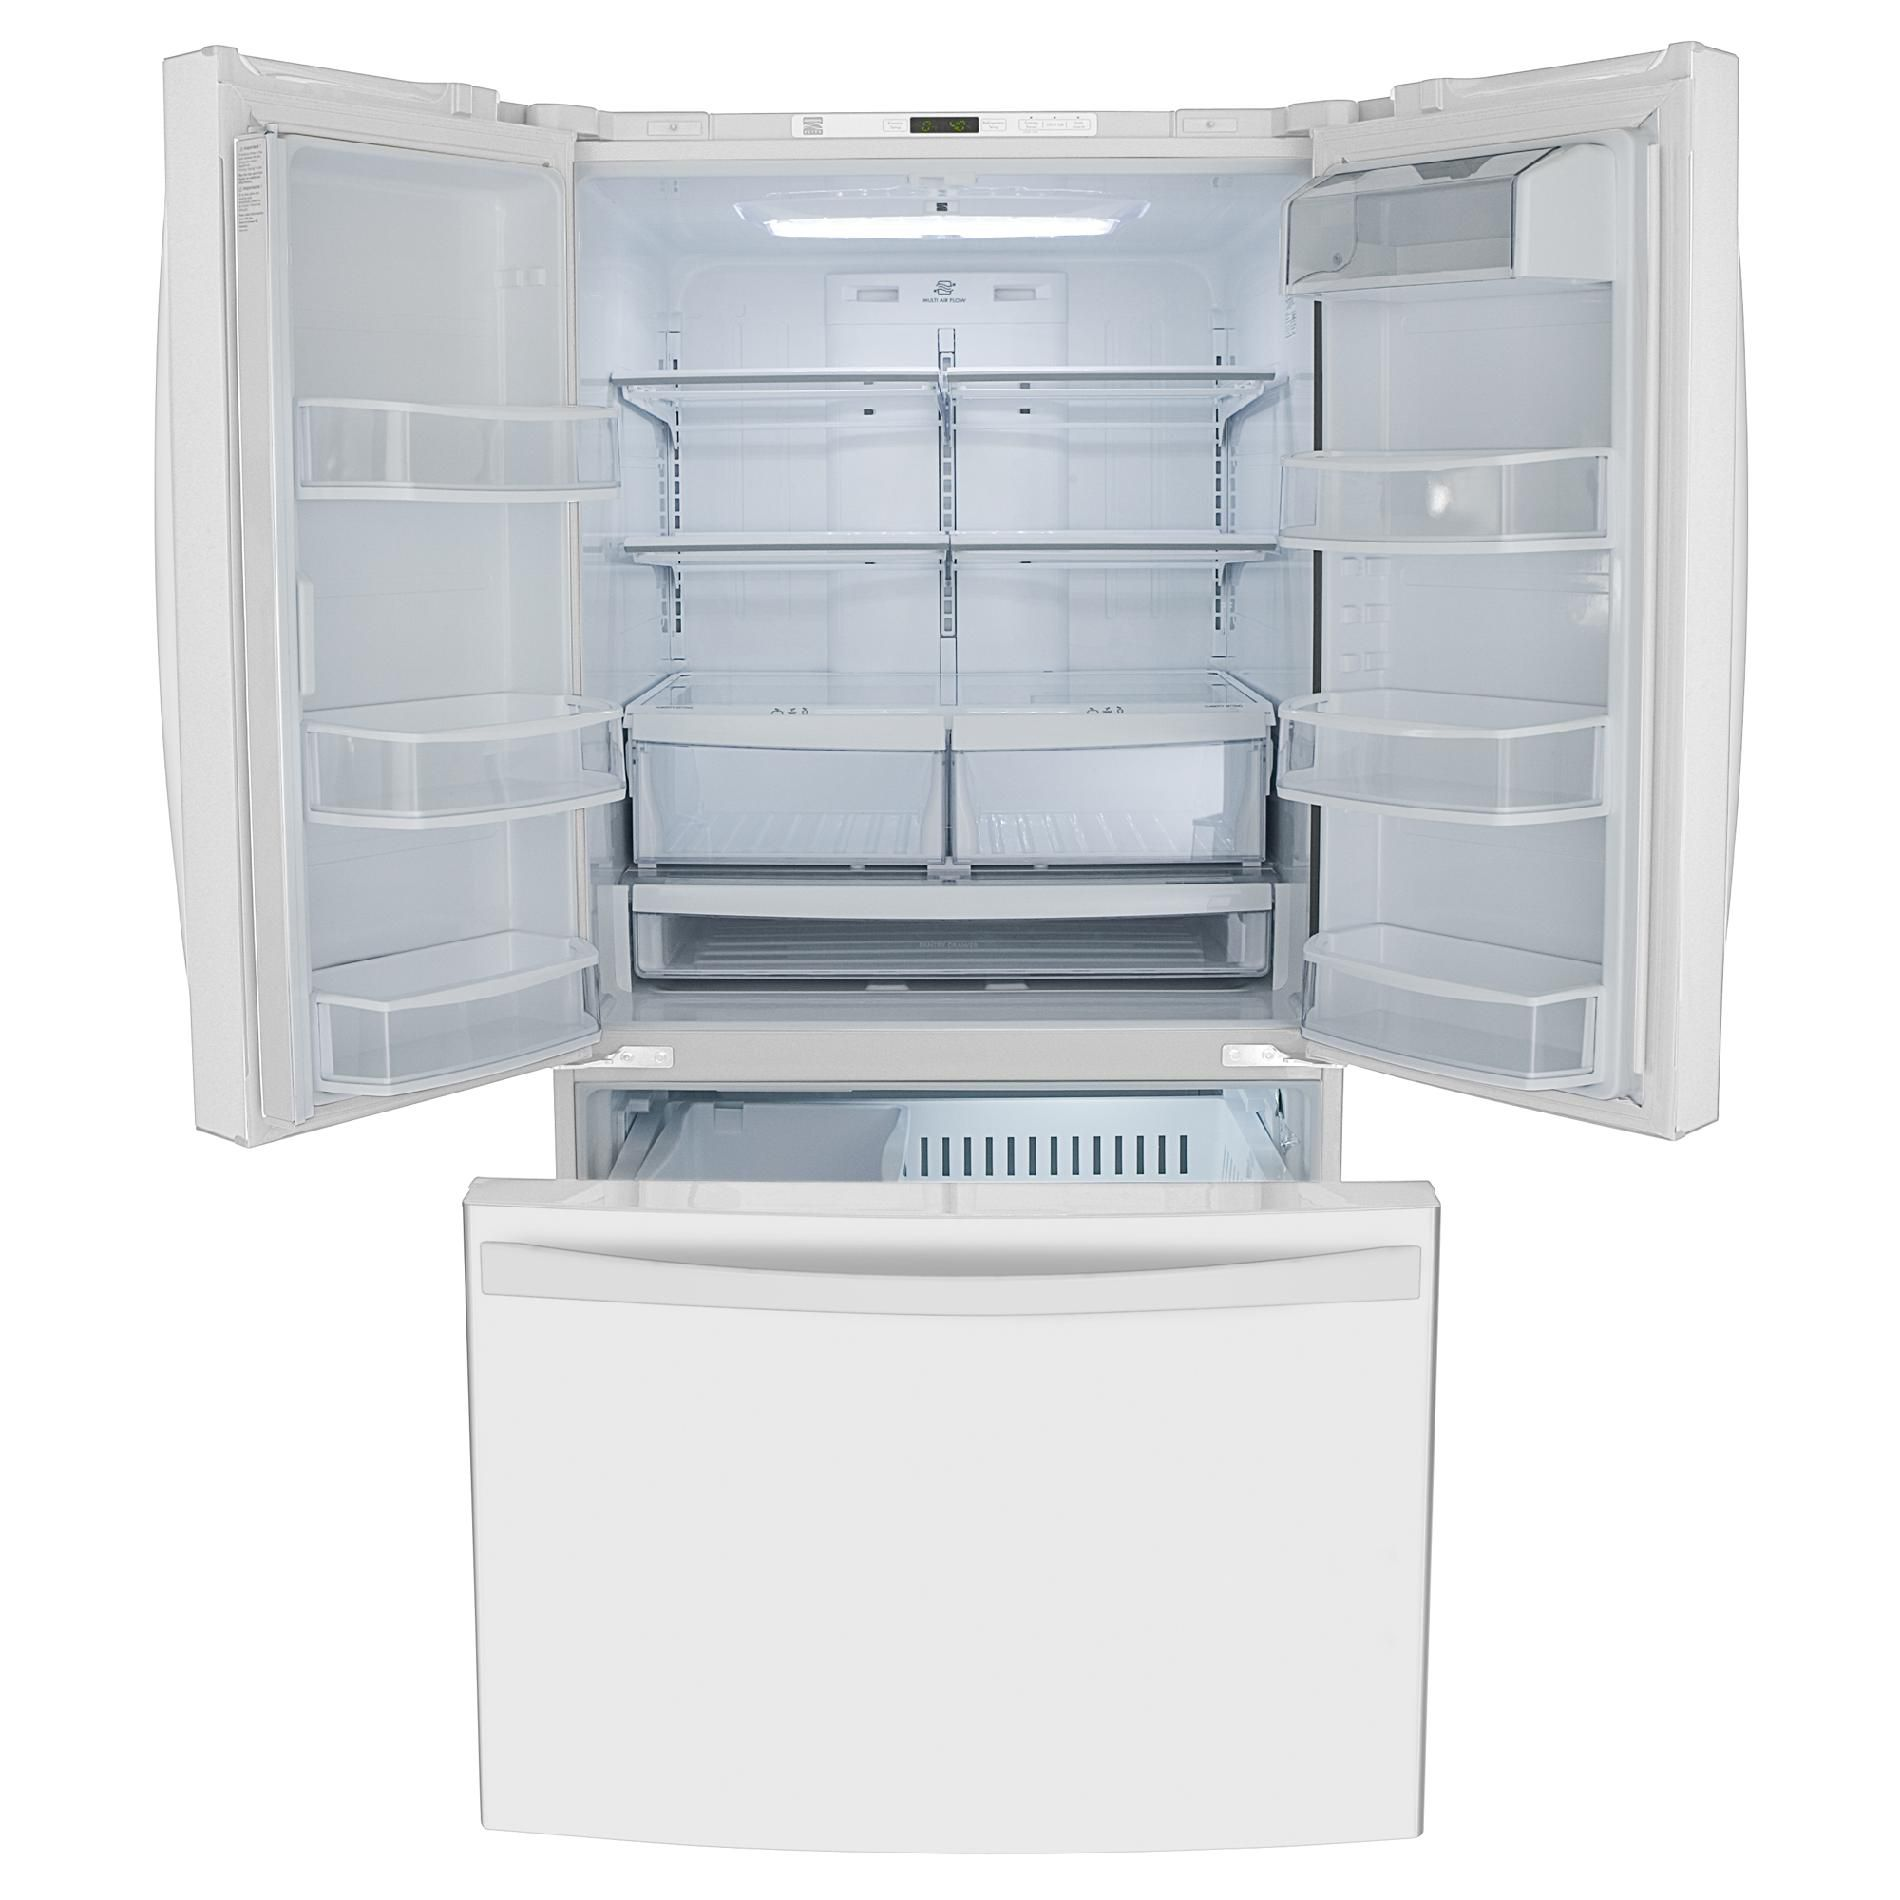 Kenmore Elite 25 cu. ft. French-Door Bottom-Freezer Refrigerator Non-Dispenser - White